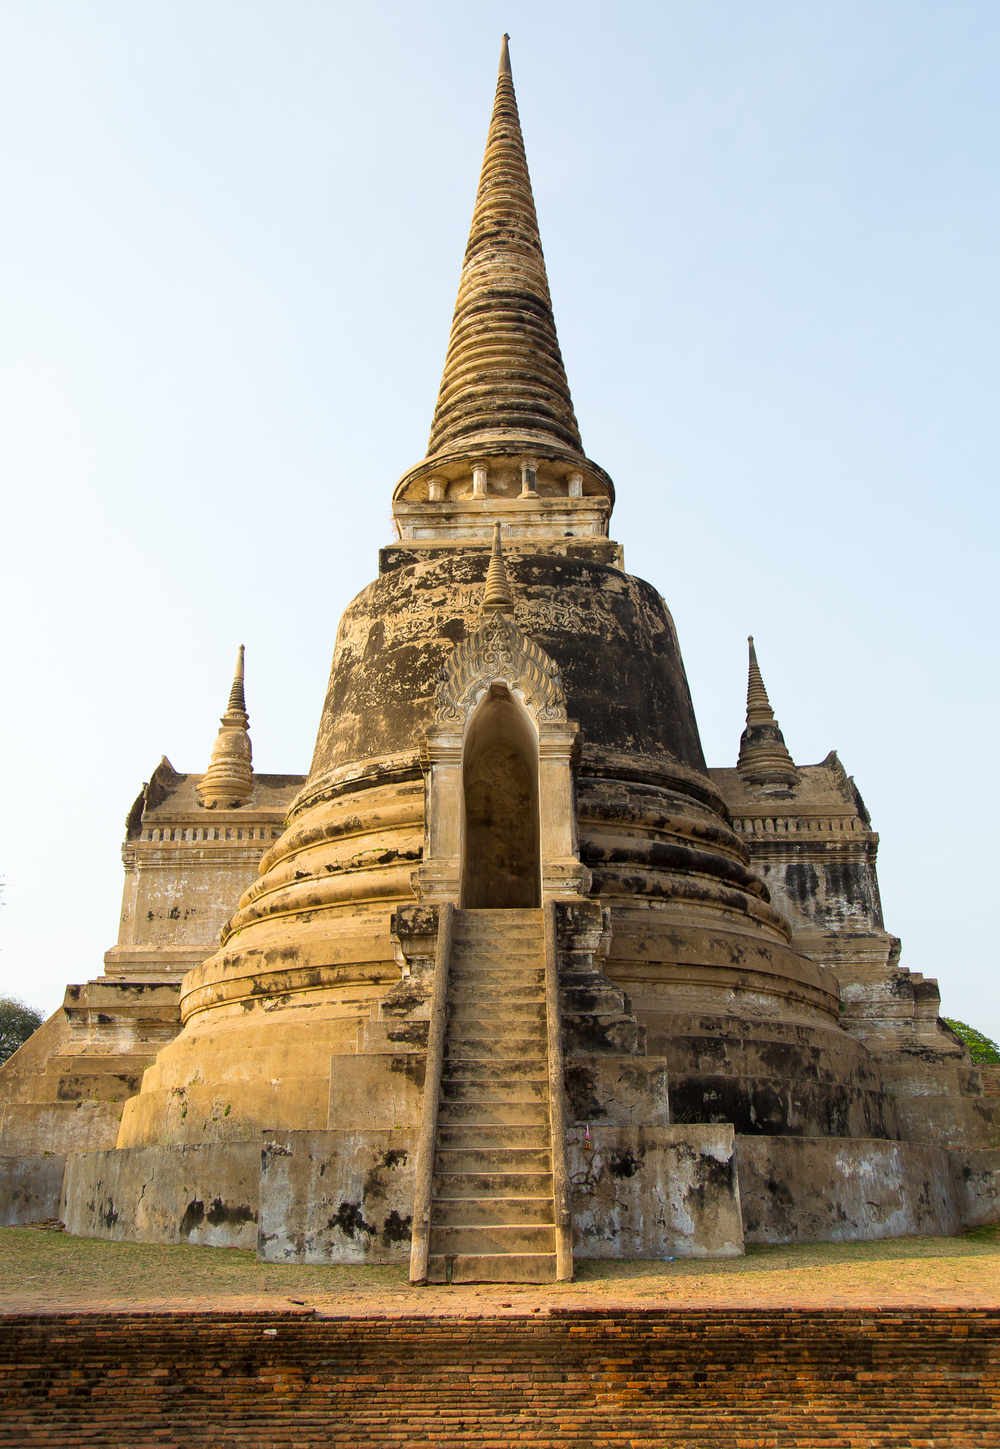 One of the three spires at Wat Phra Sri Sanphet.